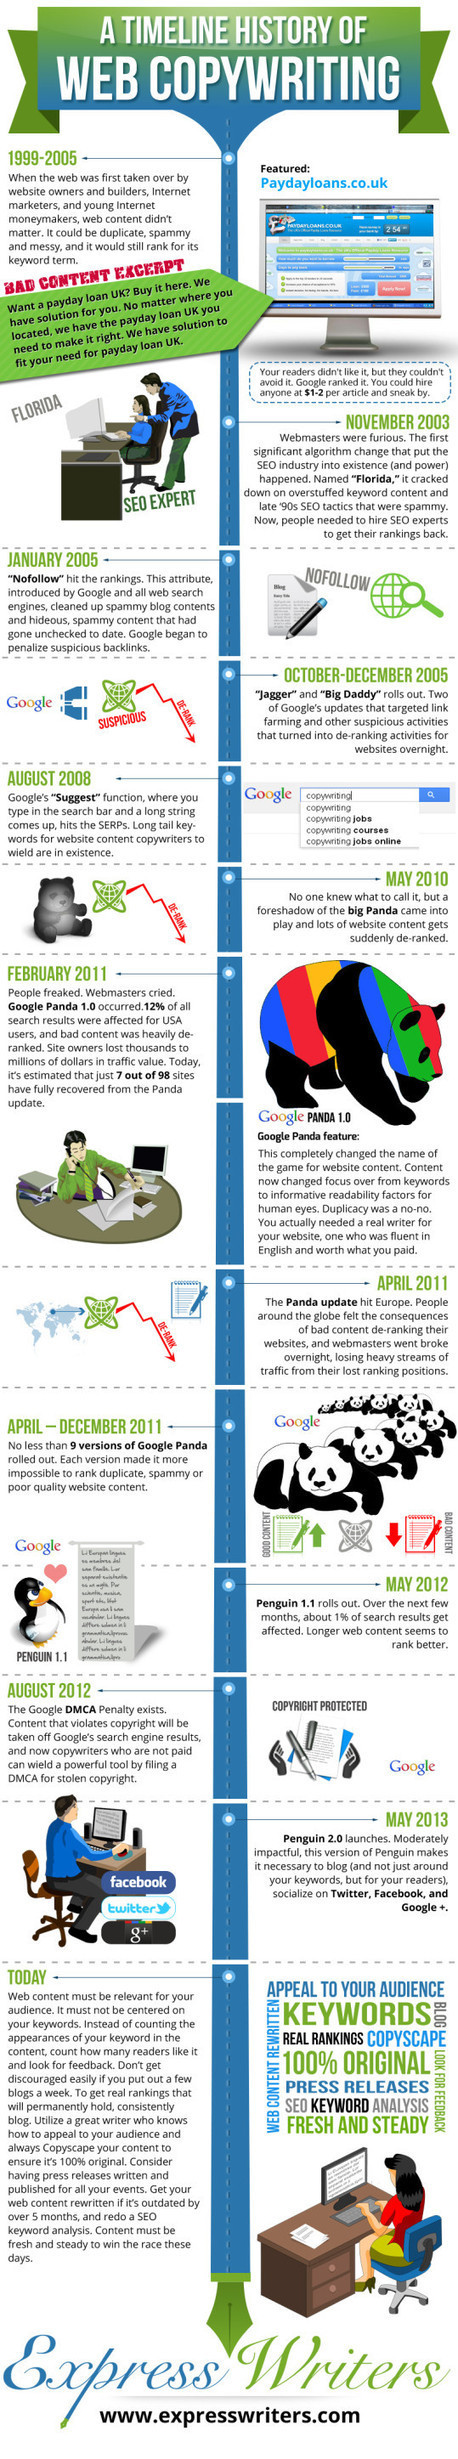 Infographic: A Timeline History of SEO and Web Copywriting - Copywriting Agency – Writing Services | Express Writers | SEO Cognition | Scoop.it